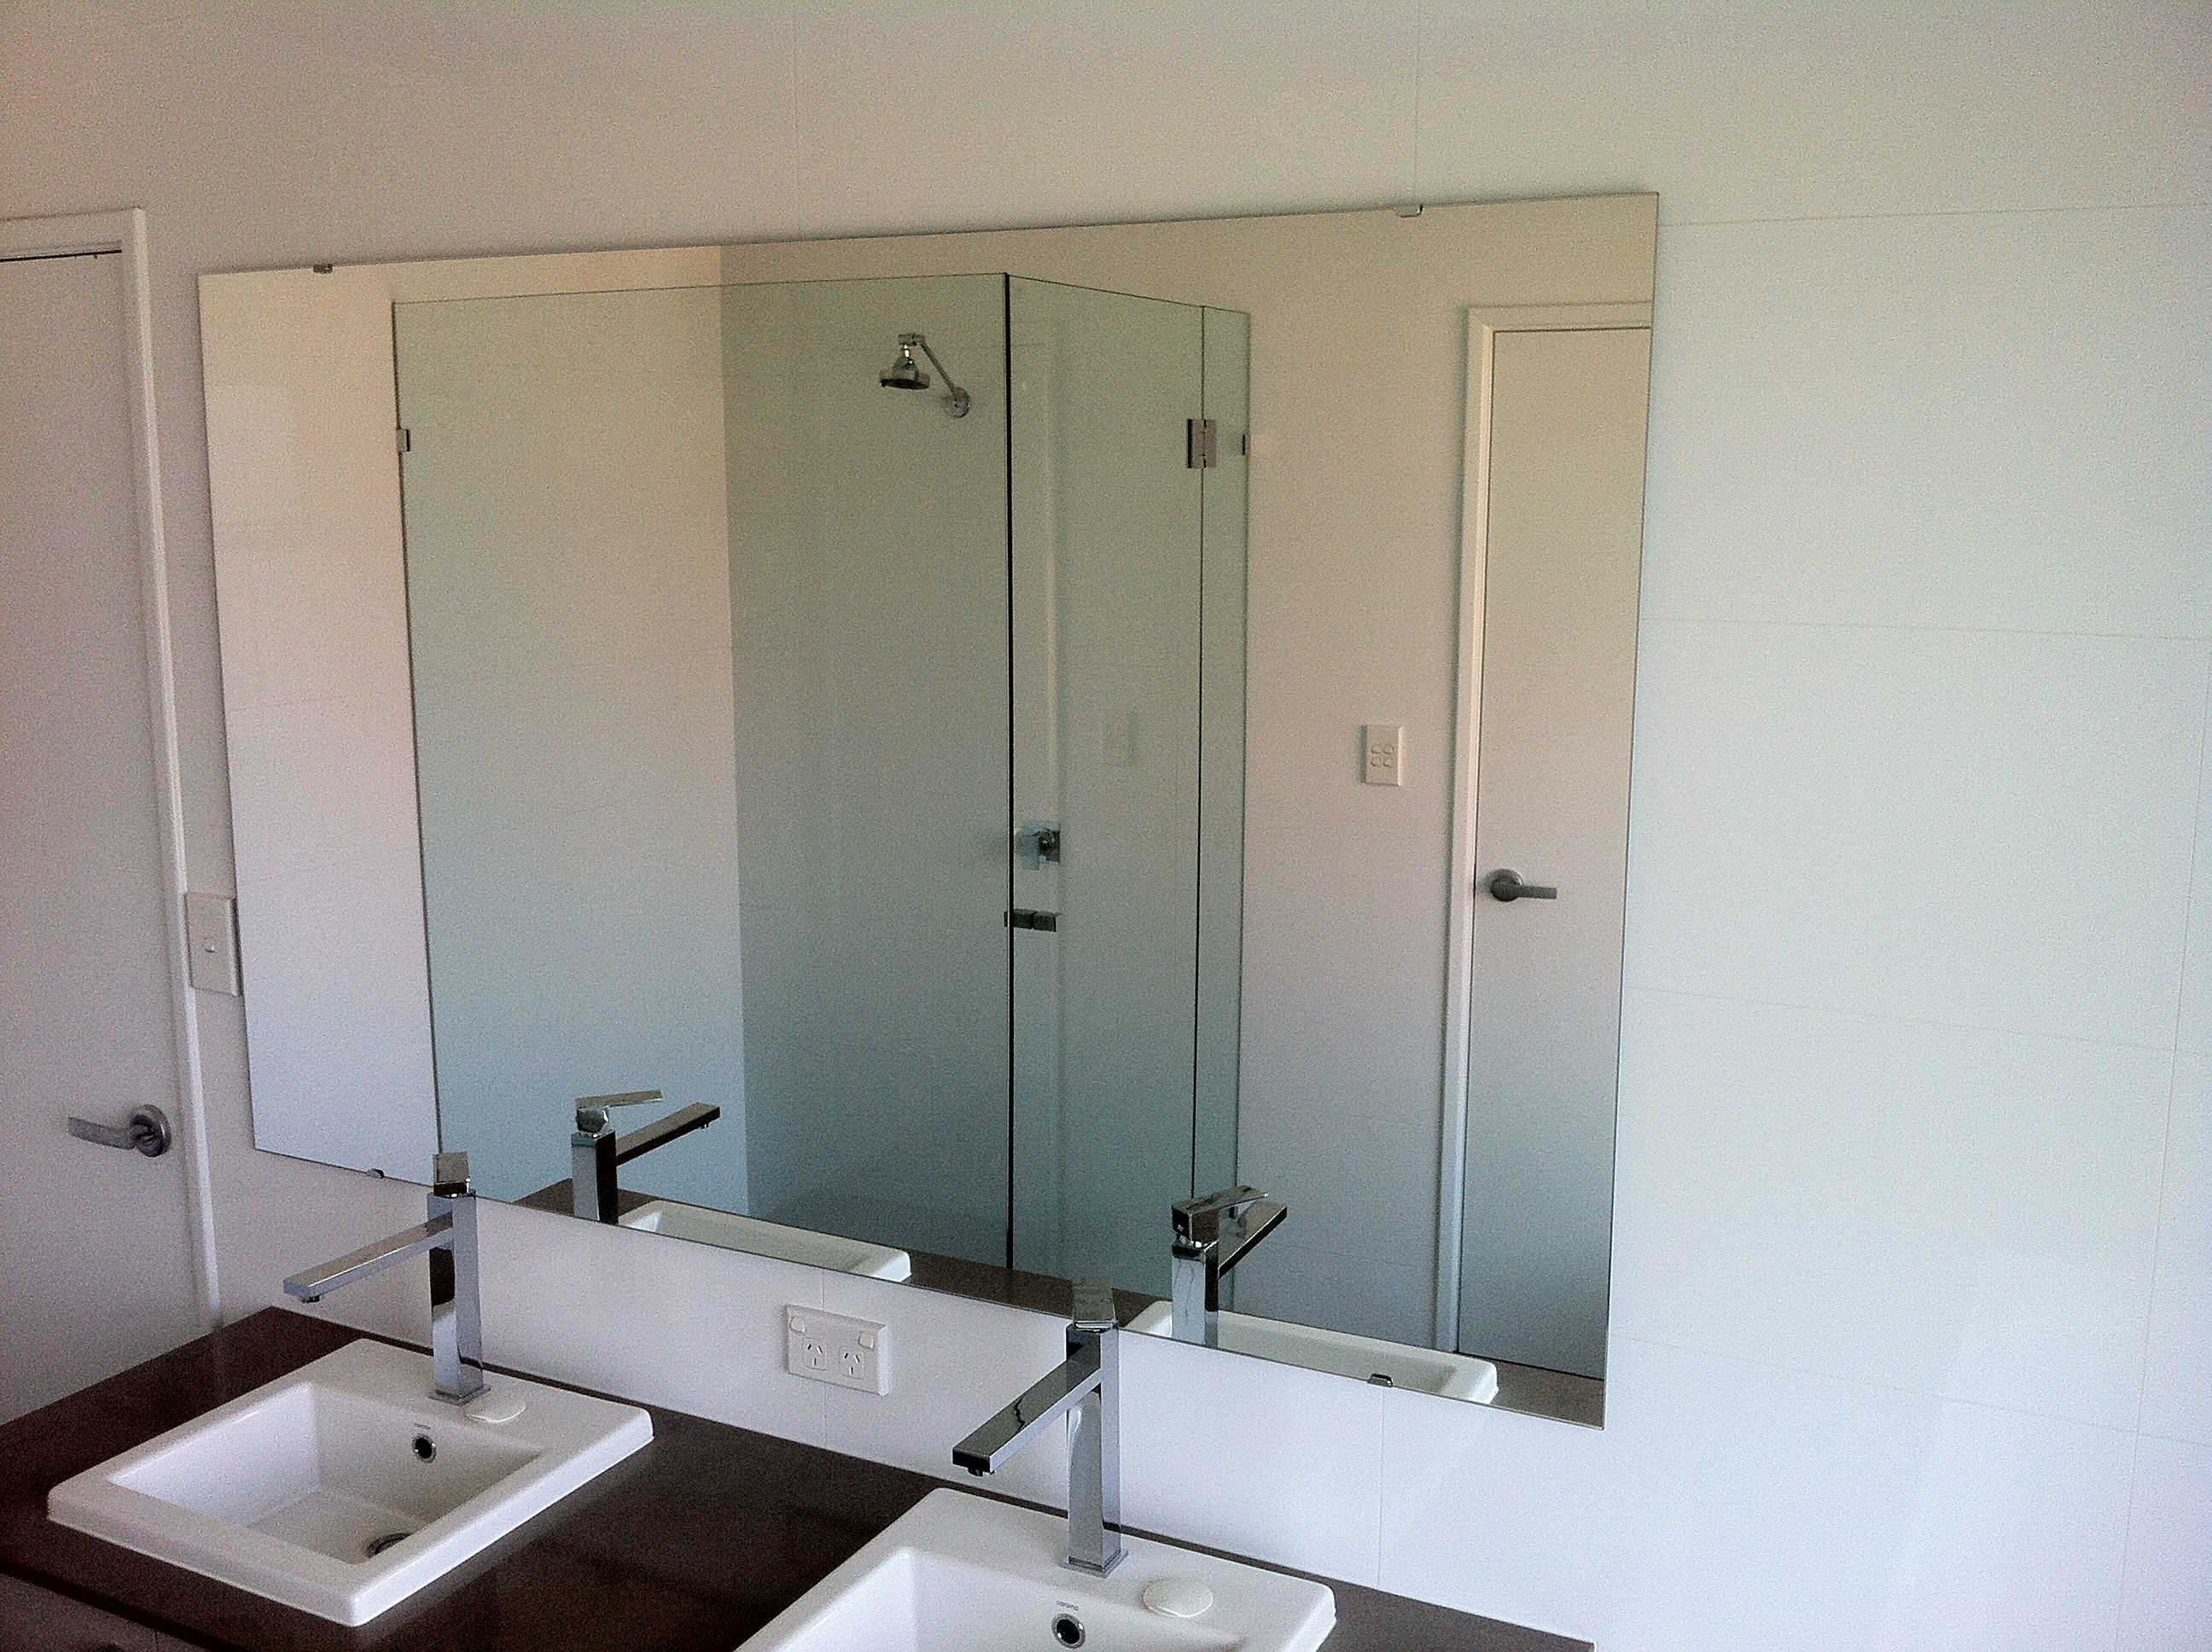 Bathroom Mirror Mounting Clips bathroom mirrors perth|bedroom mirrors|hallway mirrors